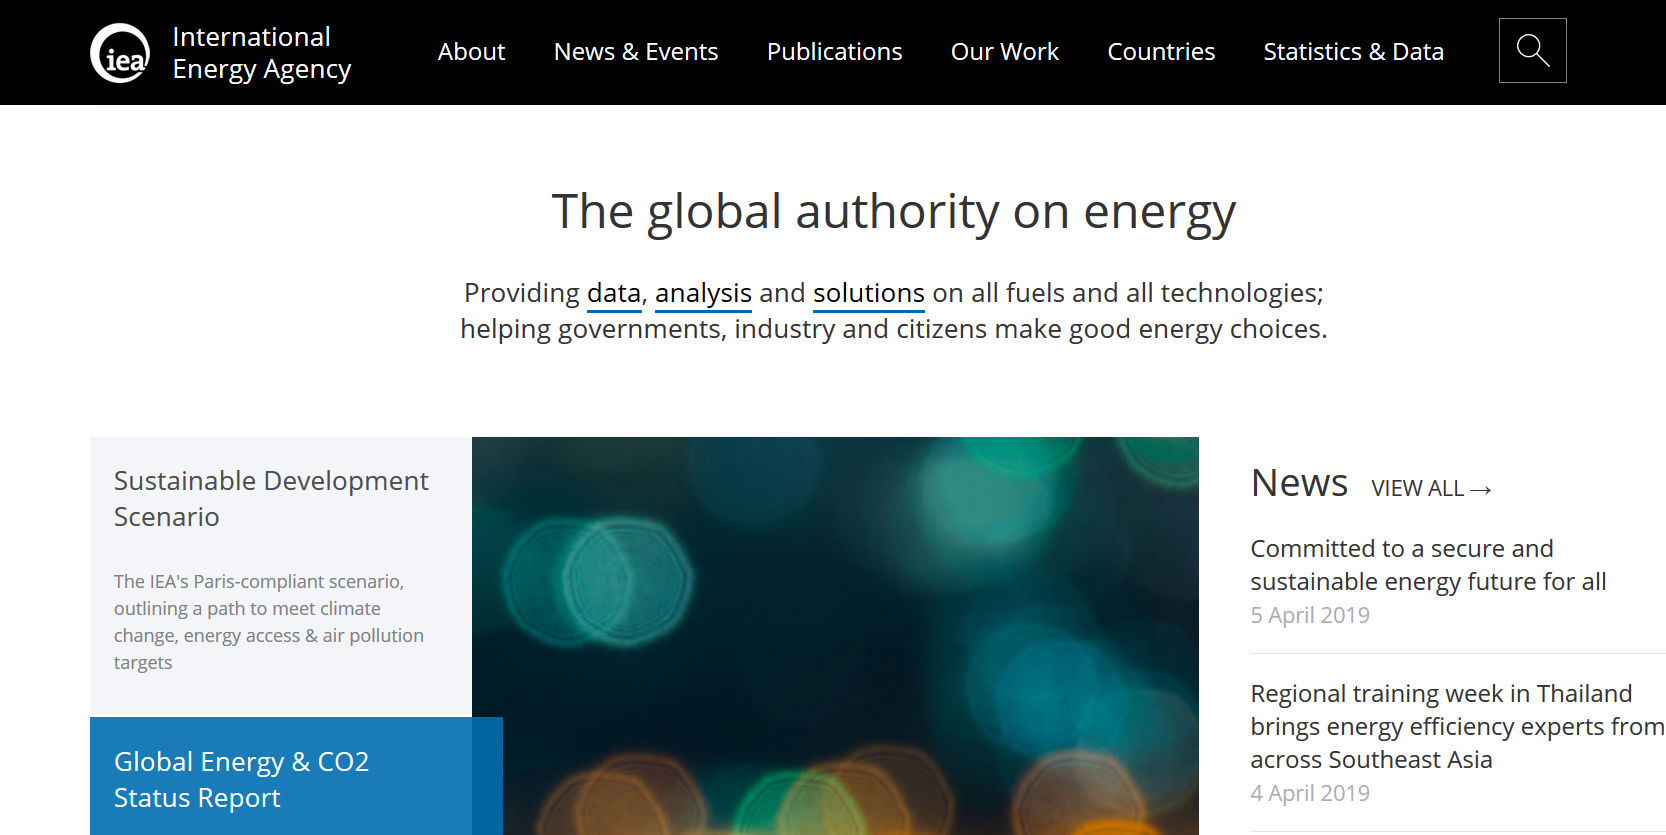 IEA defends its energy forecasts which 'steer world towards